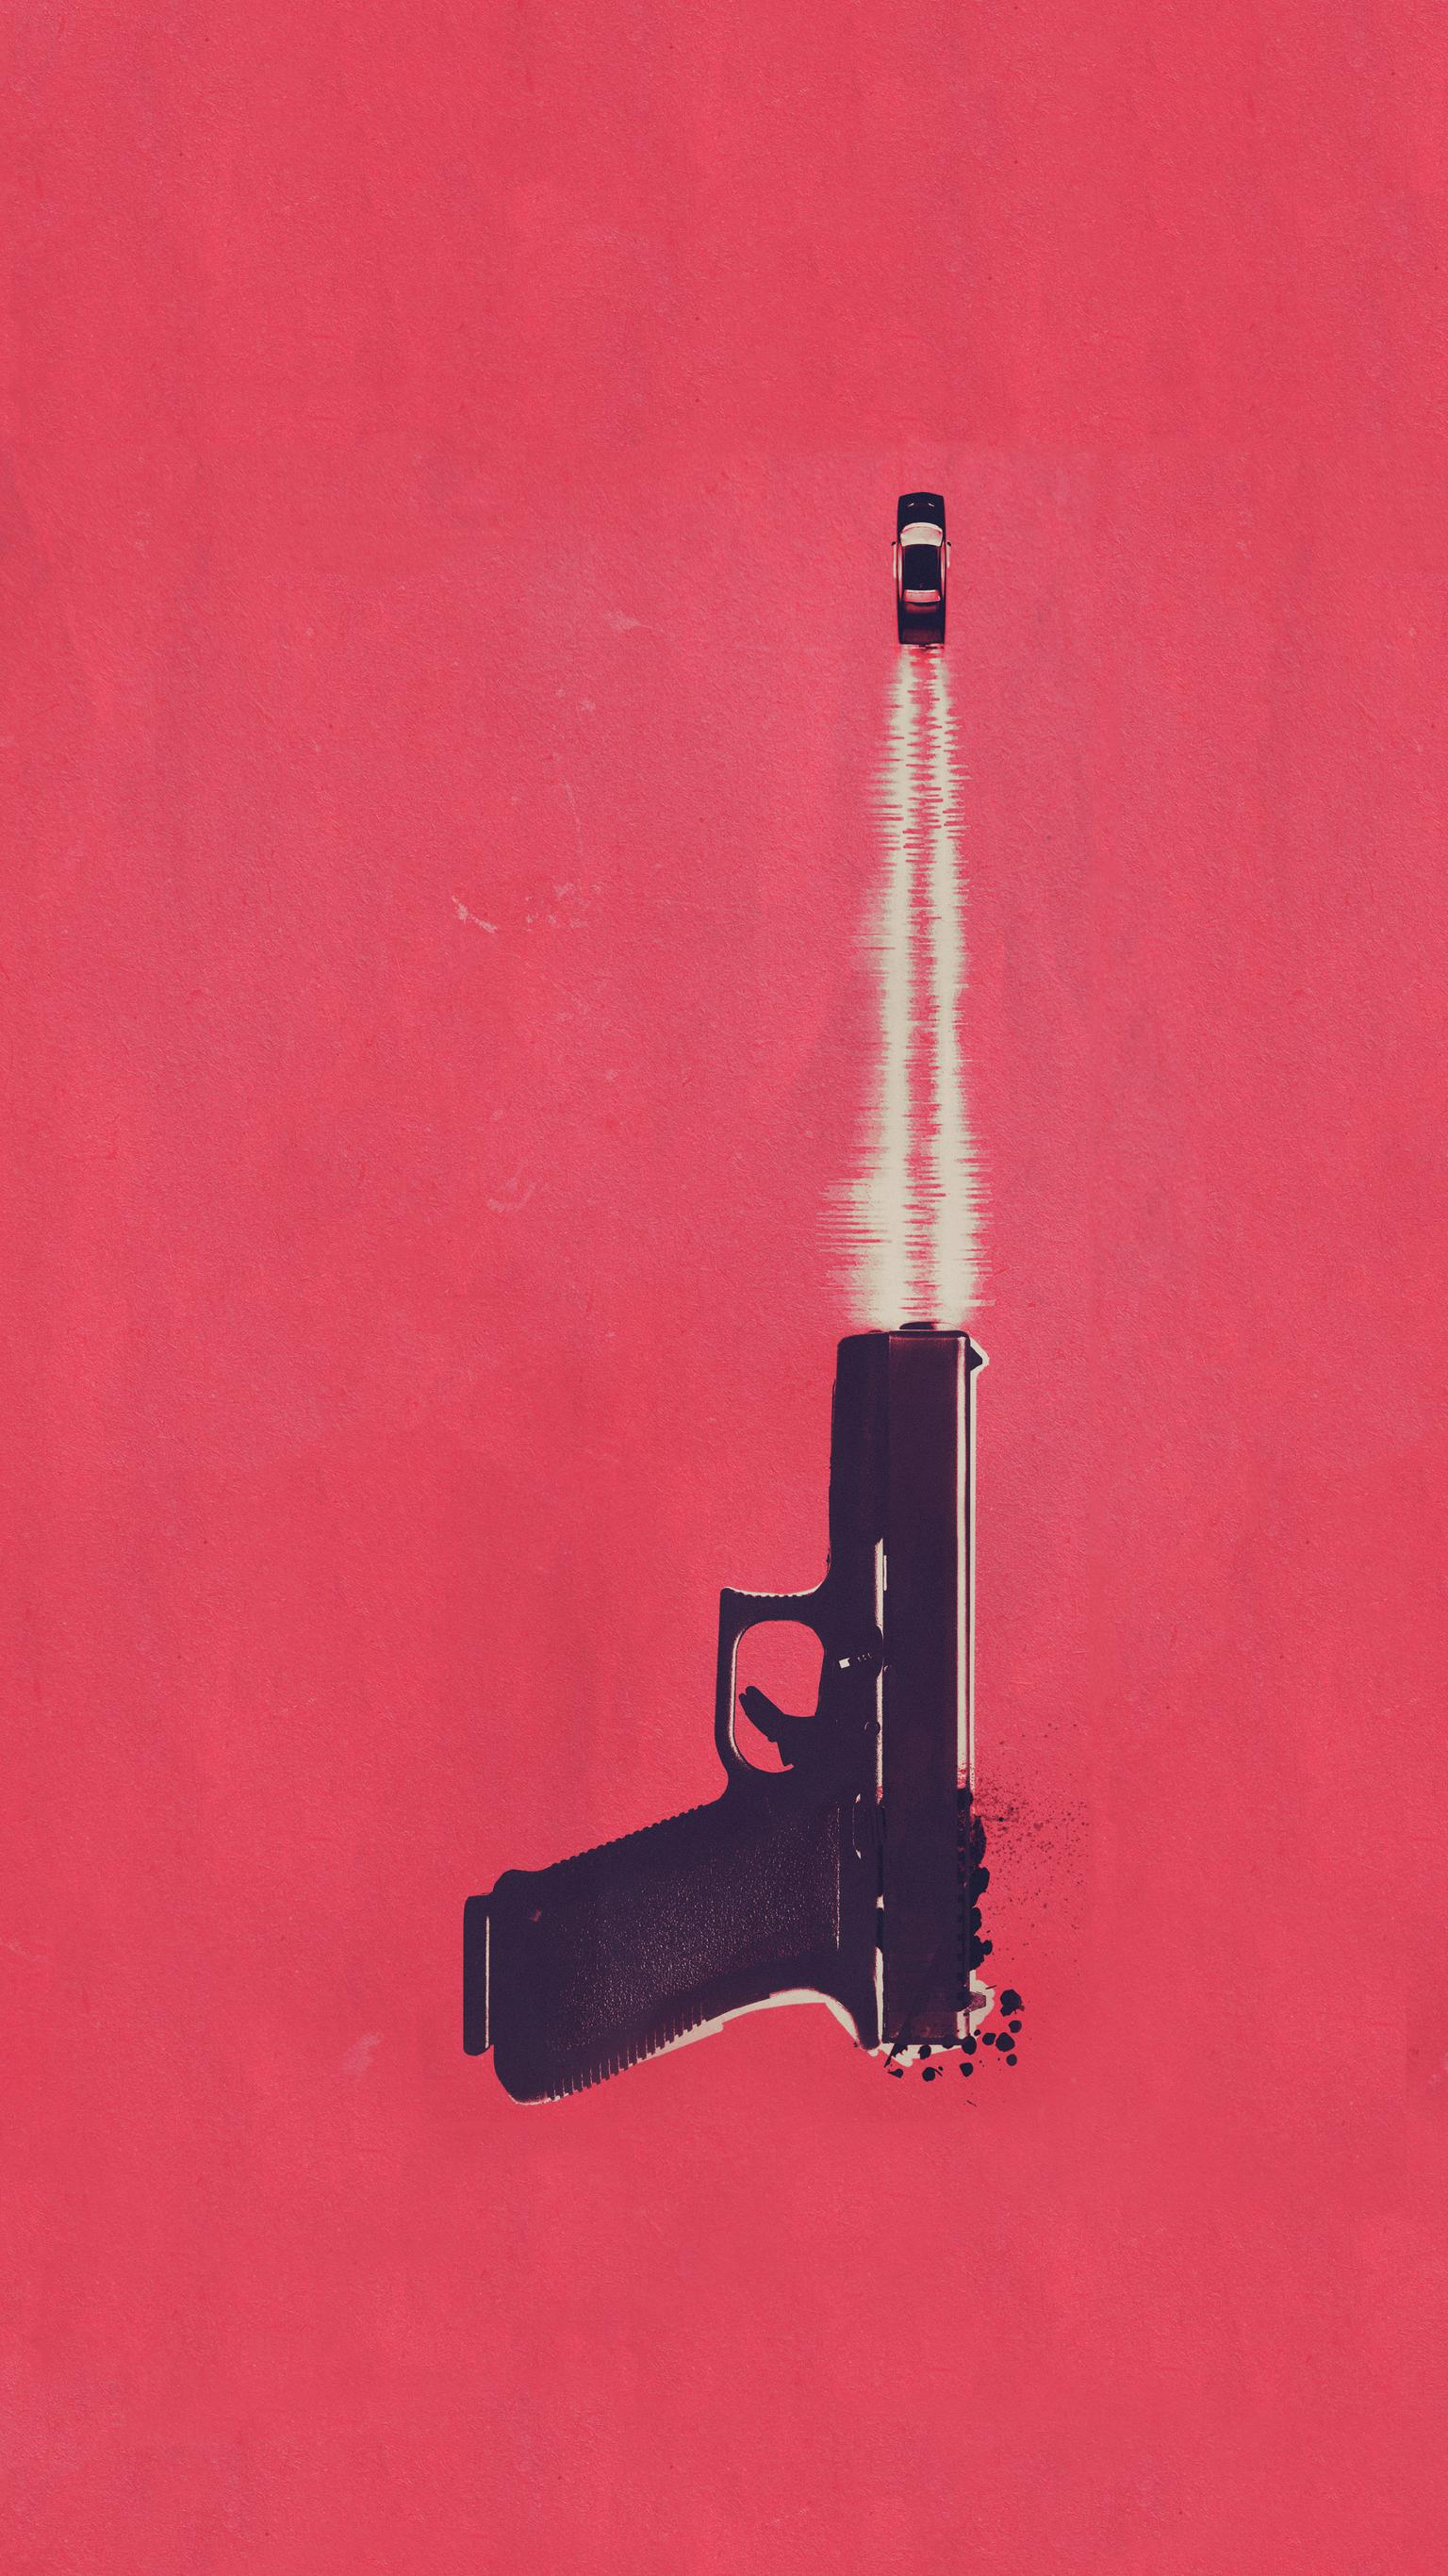 Baby Driver 2017 Phone Wallpaper Moviemania 1536x2732